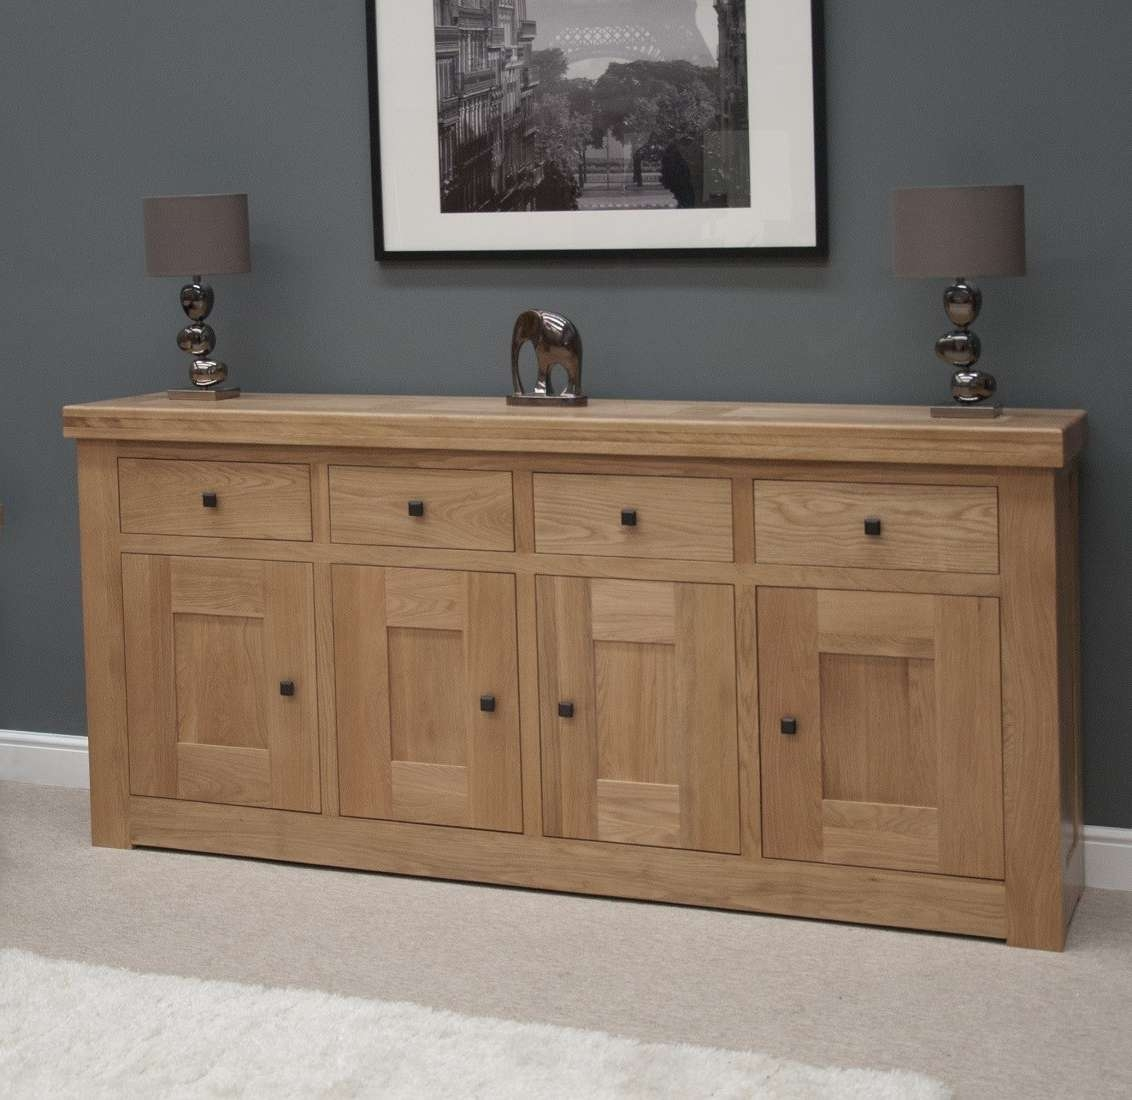 French Bordeaux Oak Extra Large 4 Door Sideboard | Oak Furniture Uk Throughout Large Sideboards (View 2 of 20)